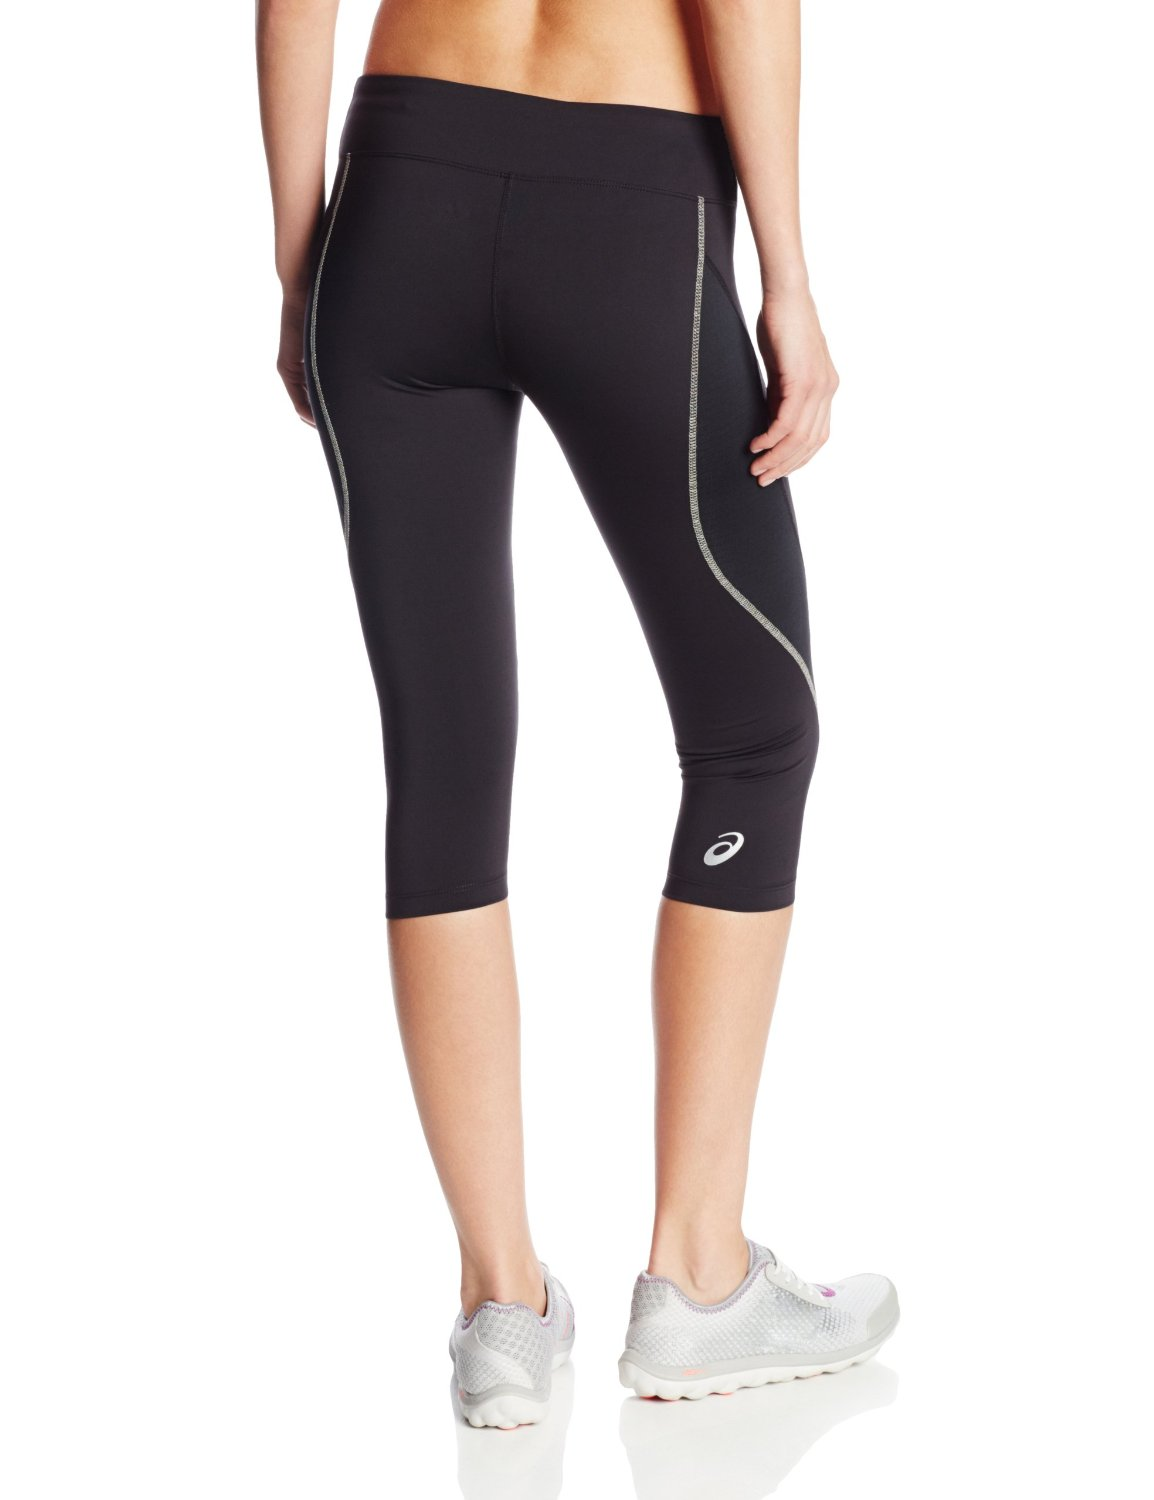 ASICS Capri Running Pants Review - Women's Lite Show Reflective